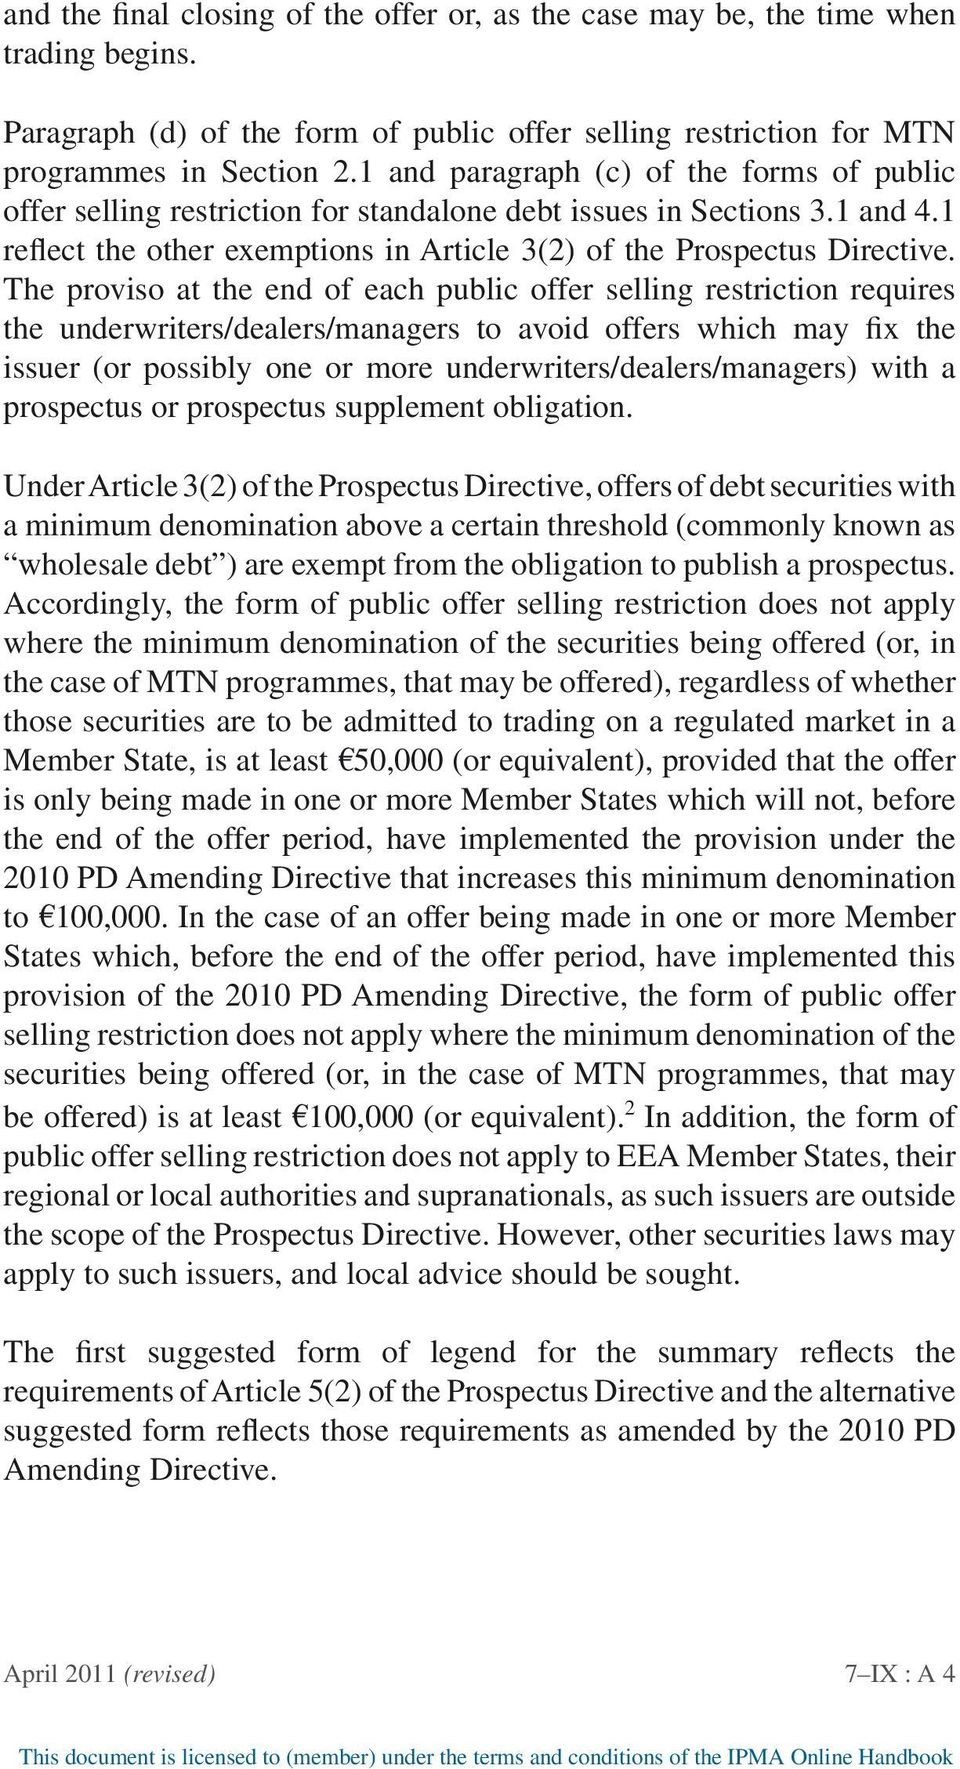 The proviso at the end of each public offer selling restriction requires the underwriters/dealers/managers to avoid offers which may fix the issuer (or possibly one or more